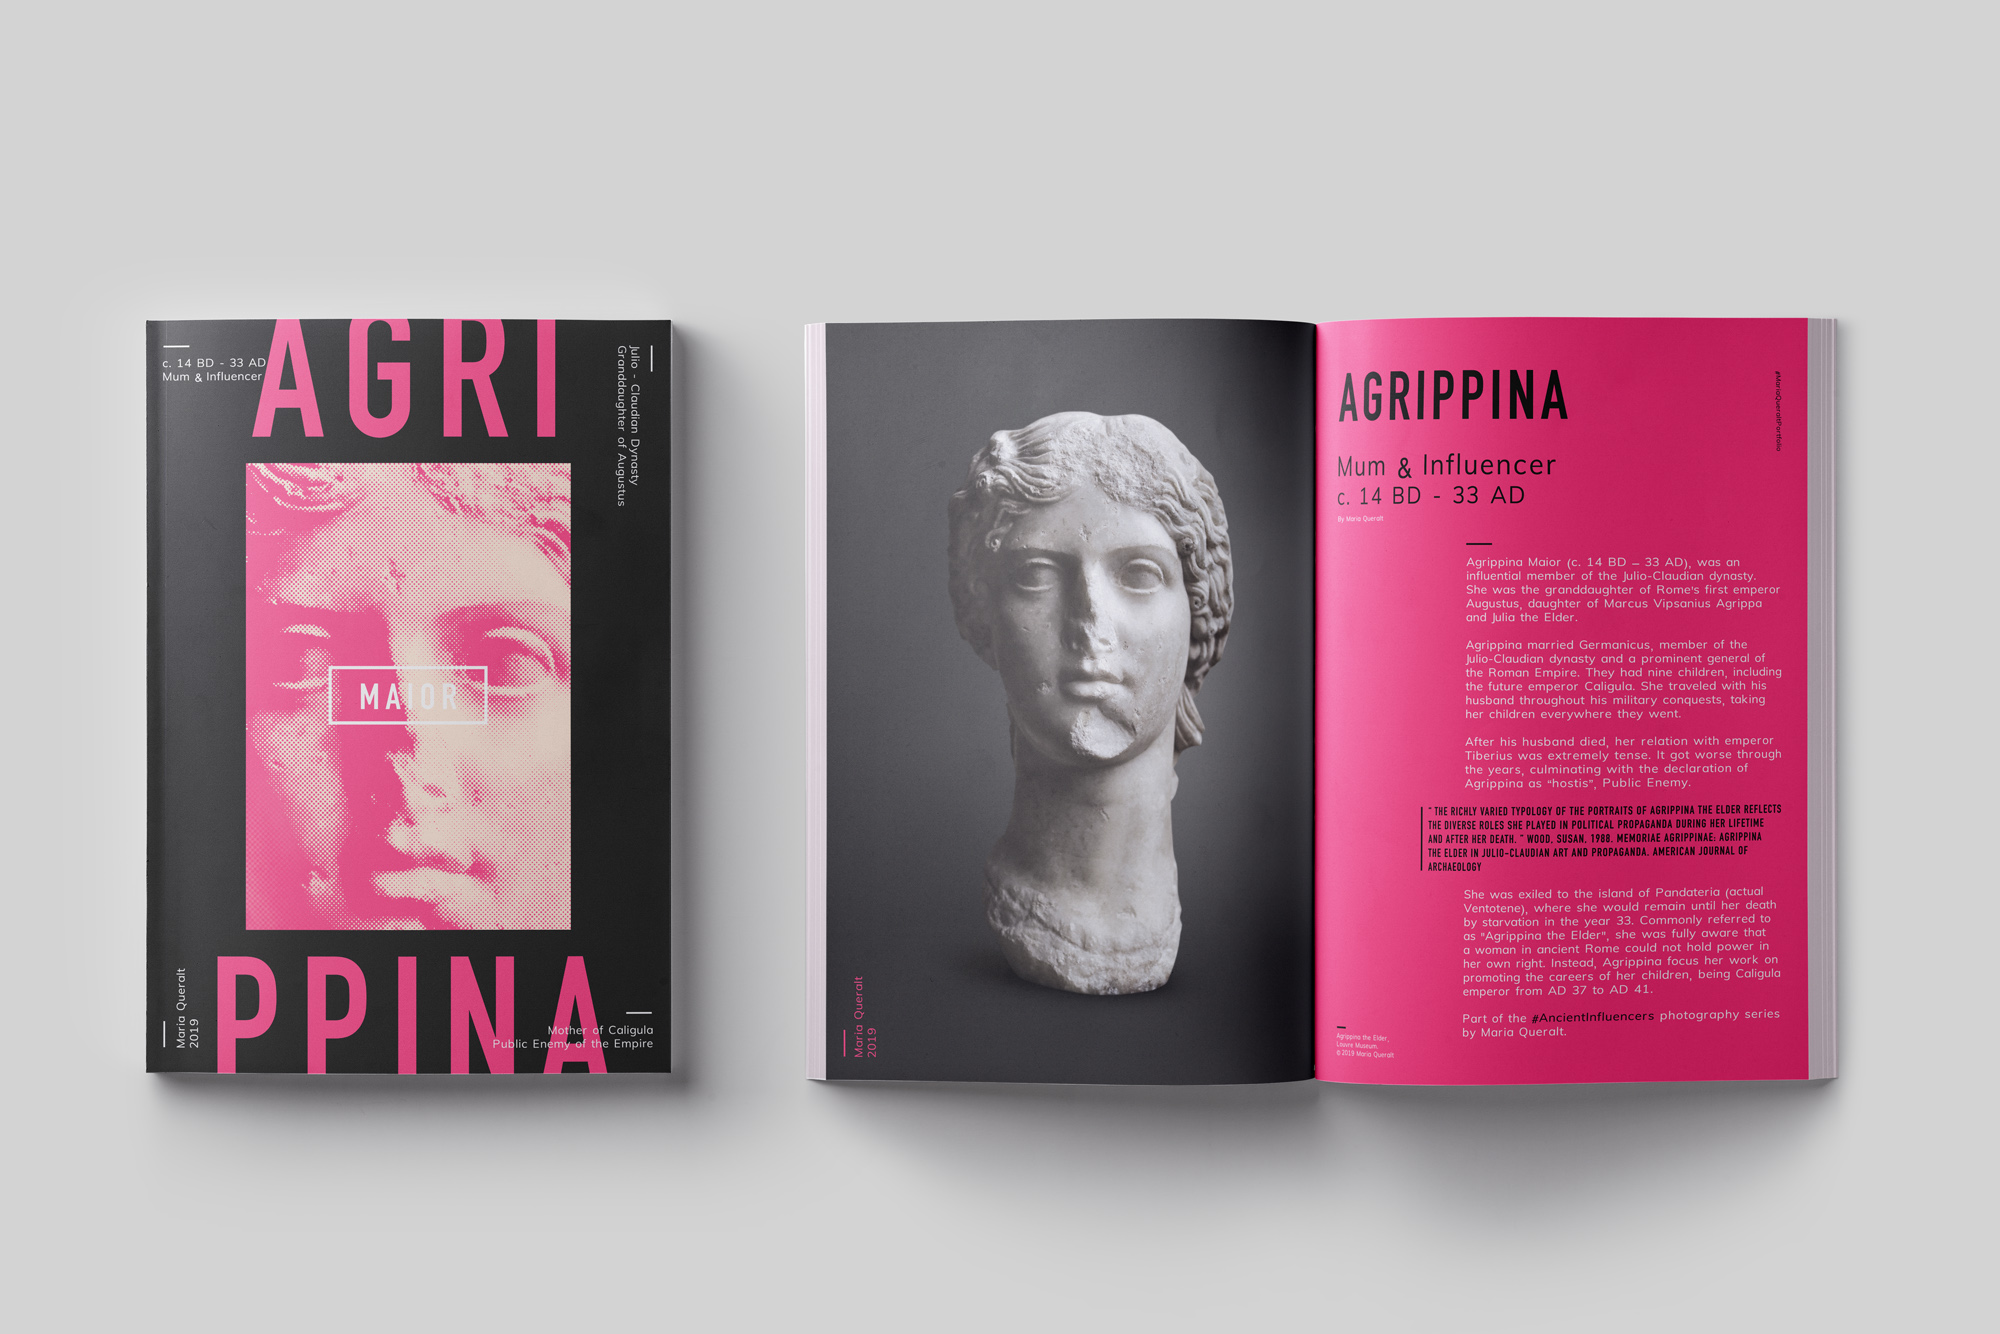 Magazine of the Sculpture of Agrippina the Elder, Part of the Ancient Influencers Photography series by Maria Queralt. Photography, design and art direction by Maria Queralt